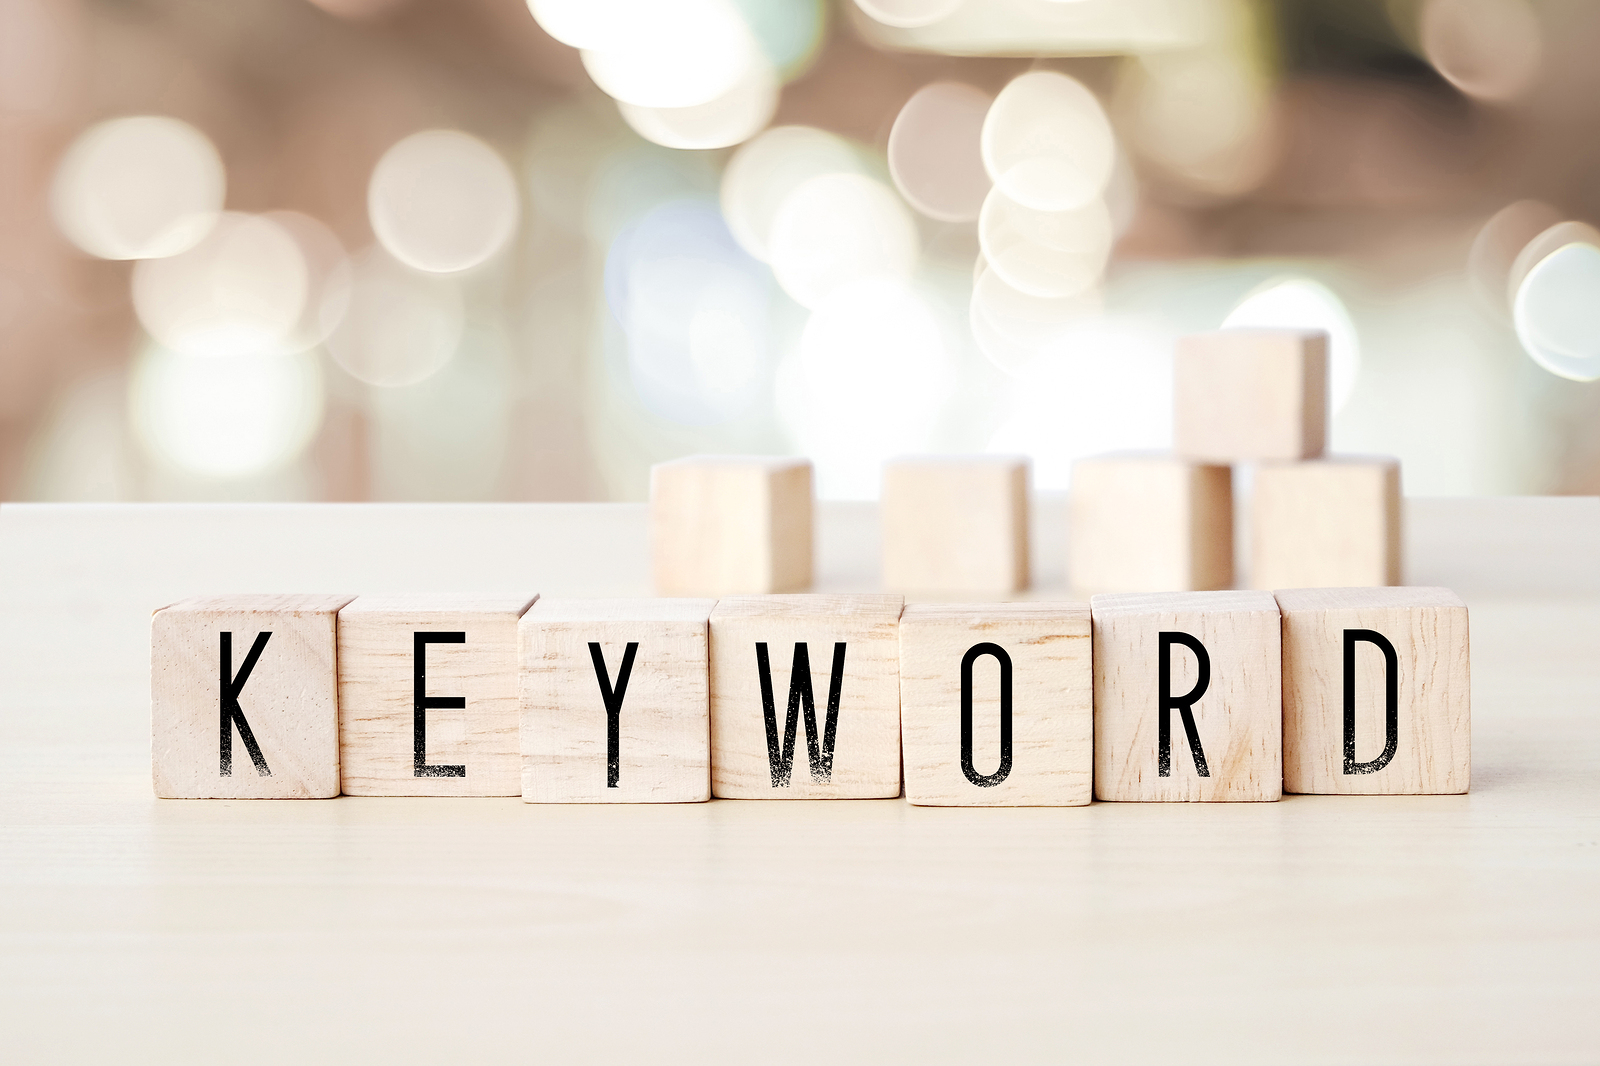 keywords application tracking systems (ATS)